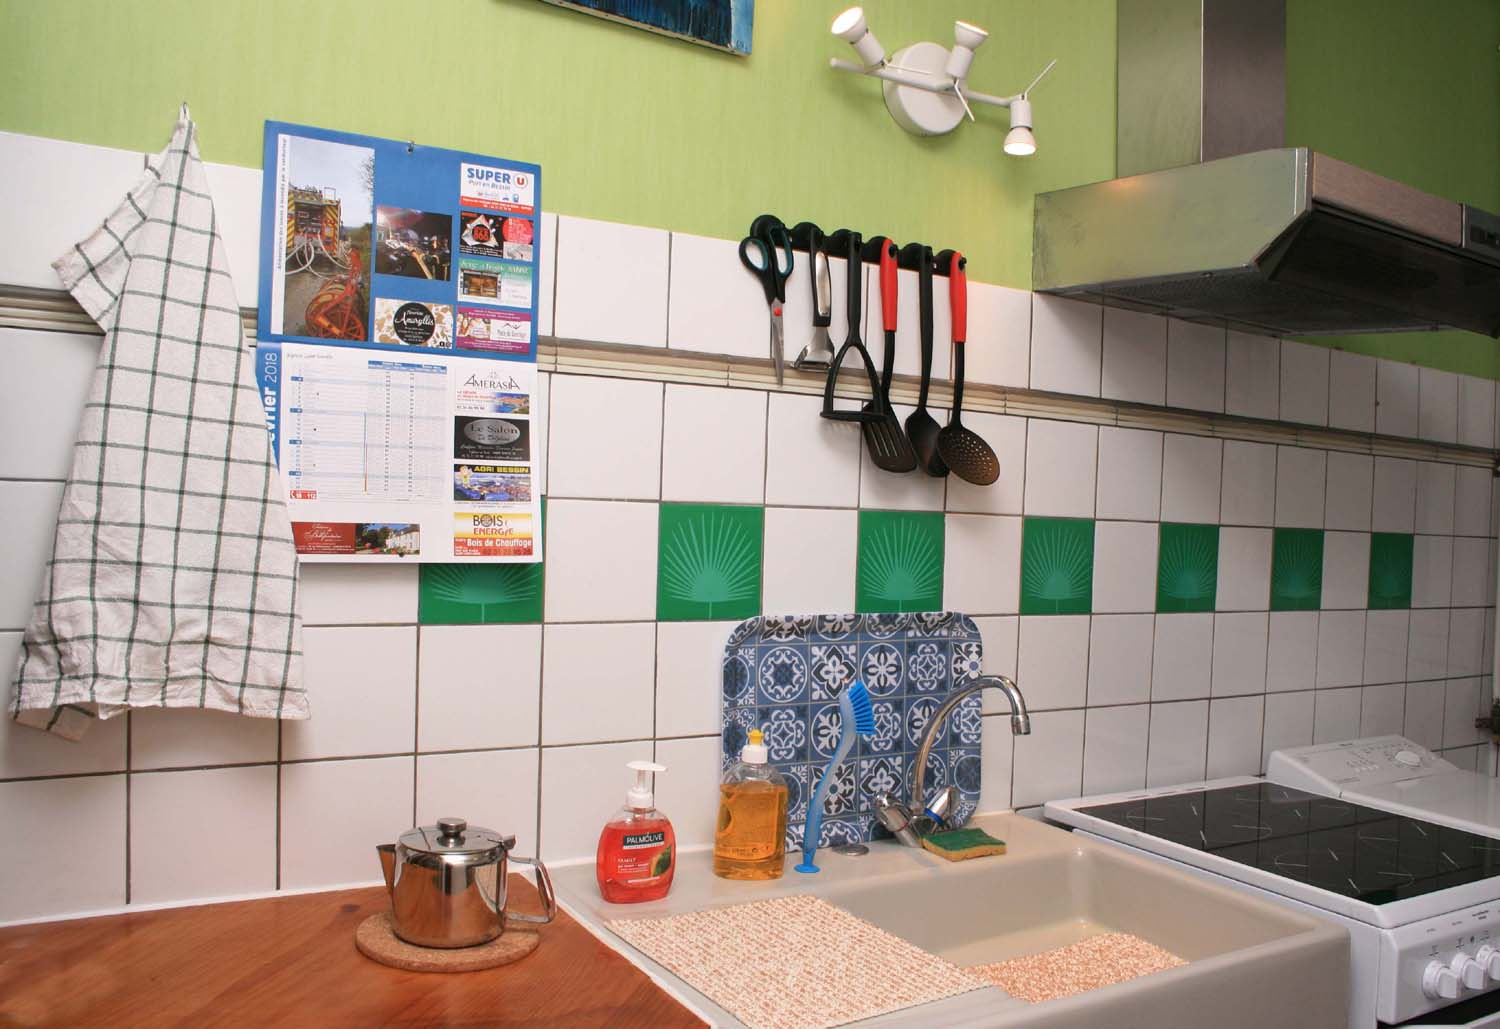 Sink utensils, ceramic hobs washing machine